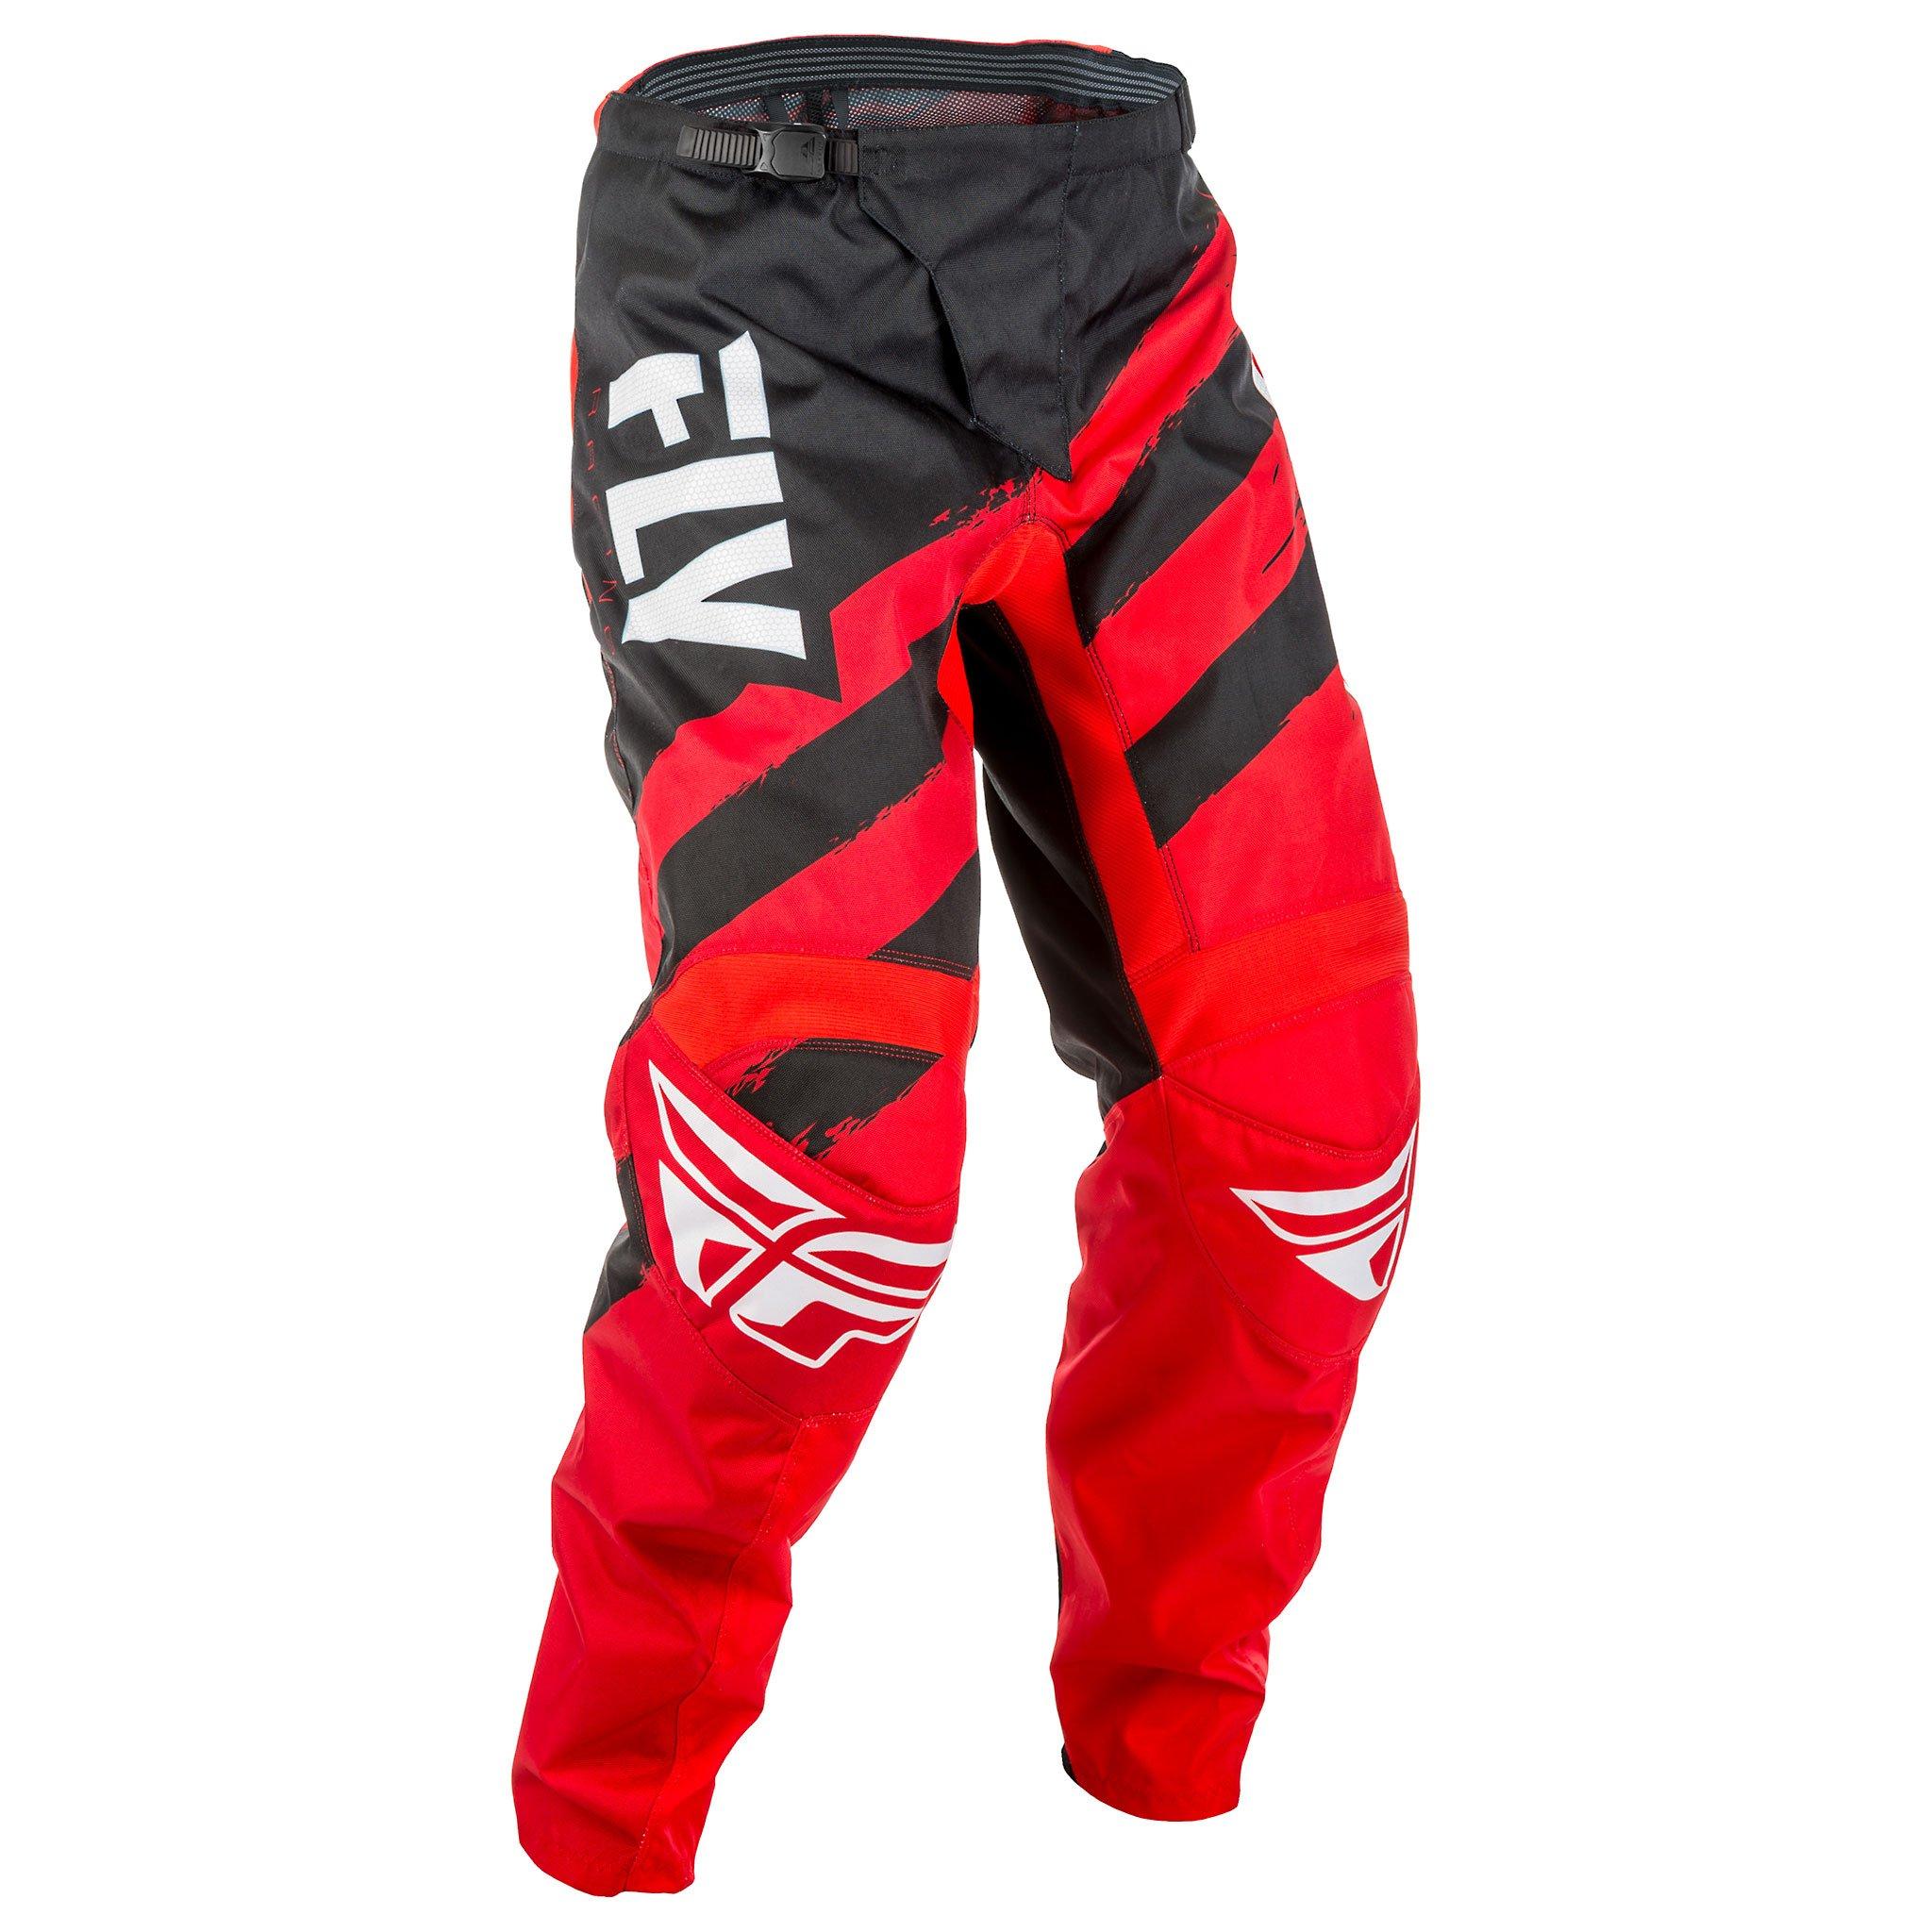 Fly Racing Men's Pants(Red/Black, Size 26),1 Pack by Fly Racing